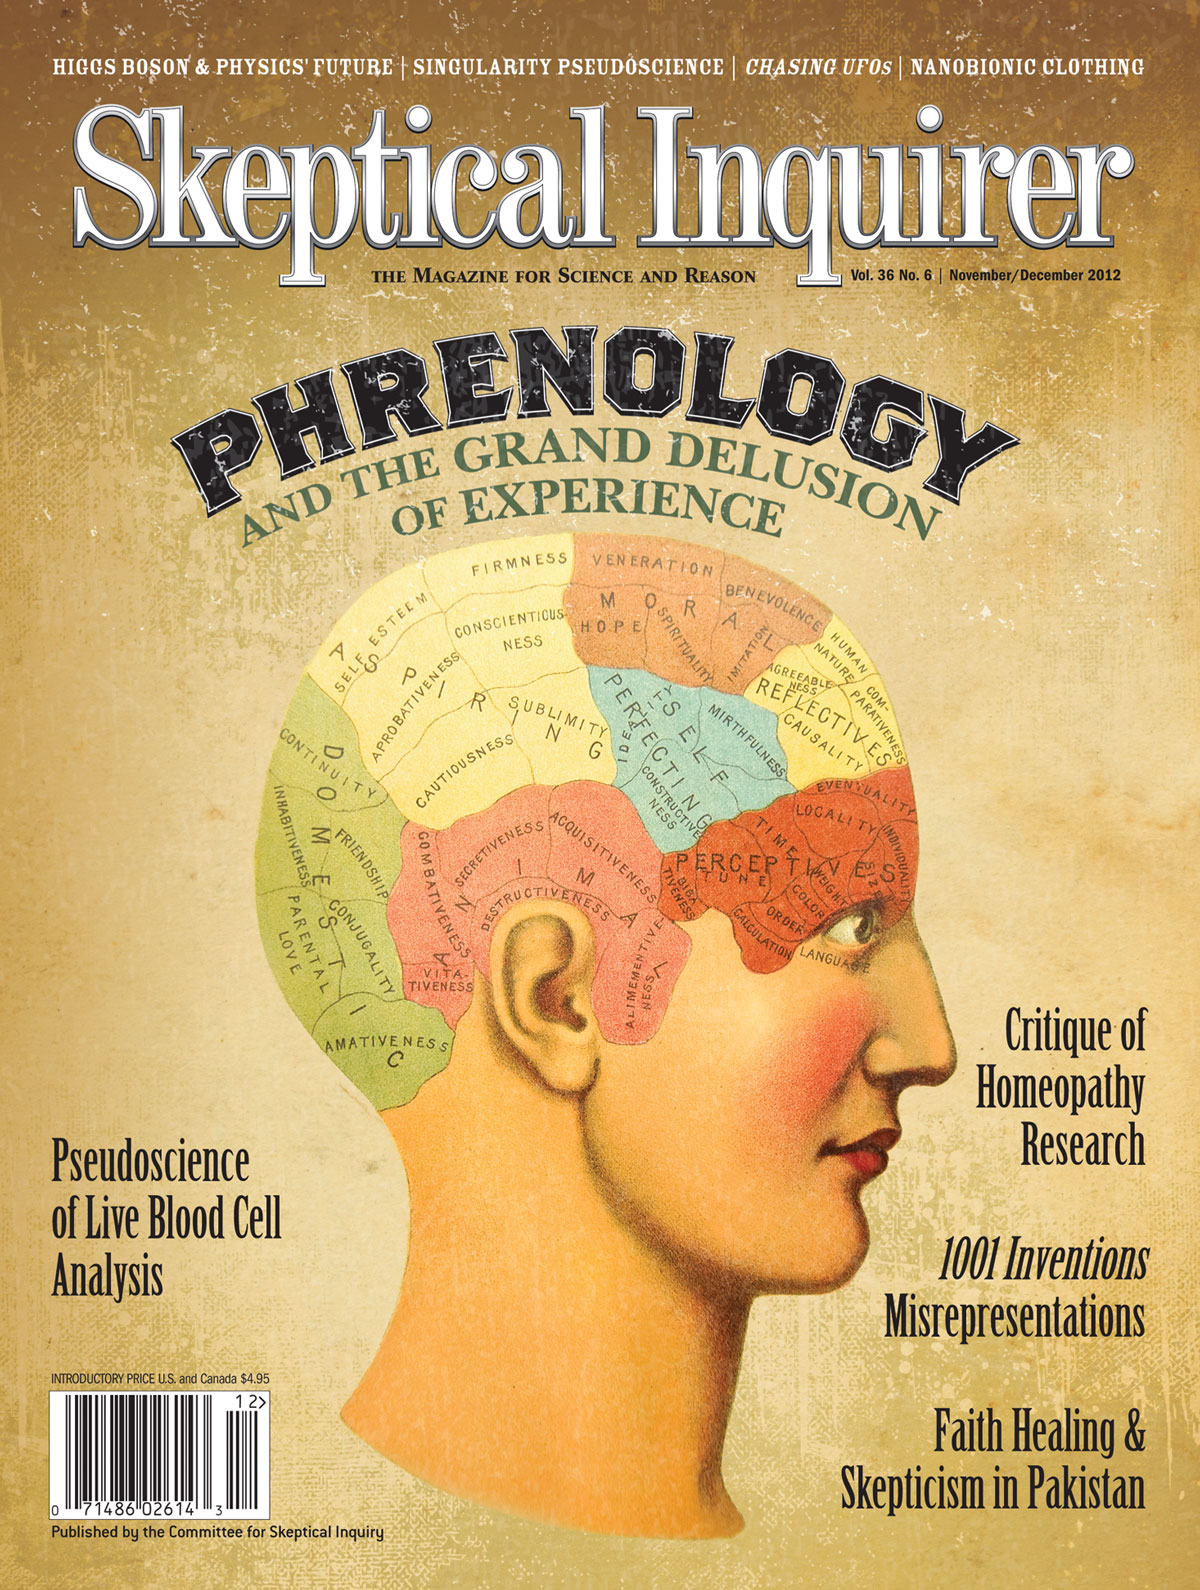 phrenology si skeptical inquirer